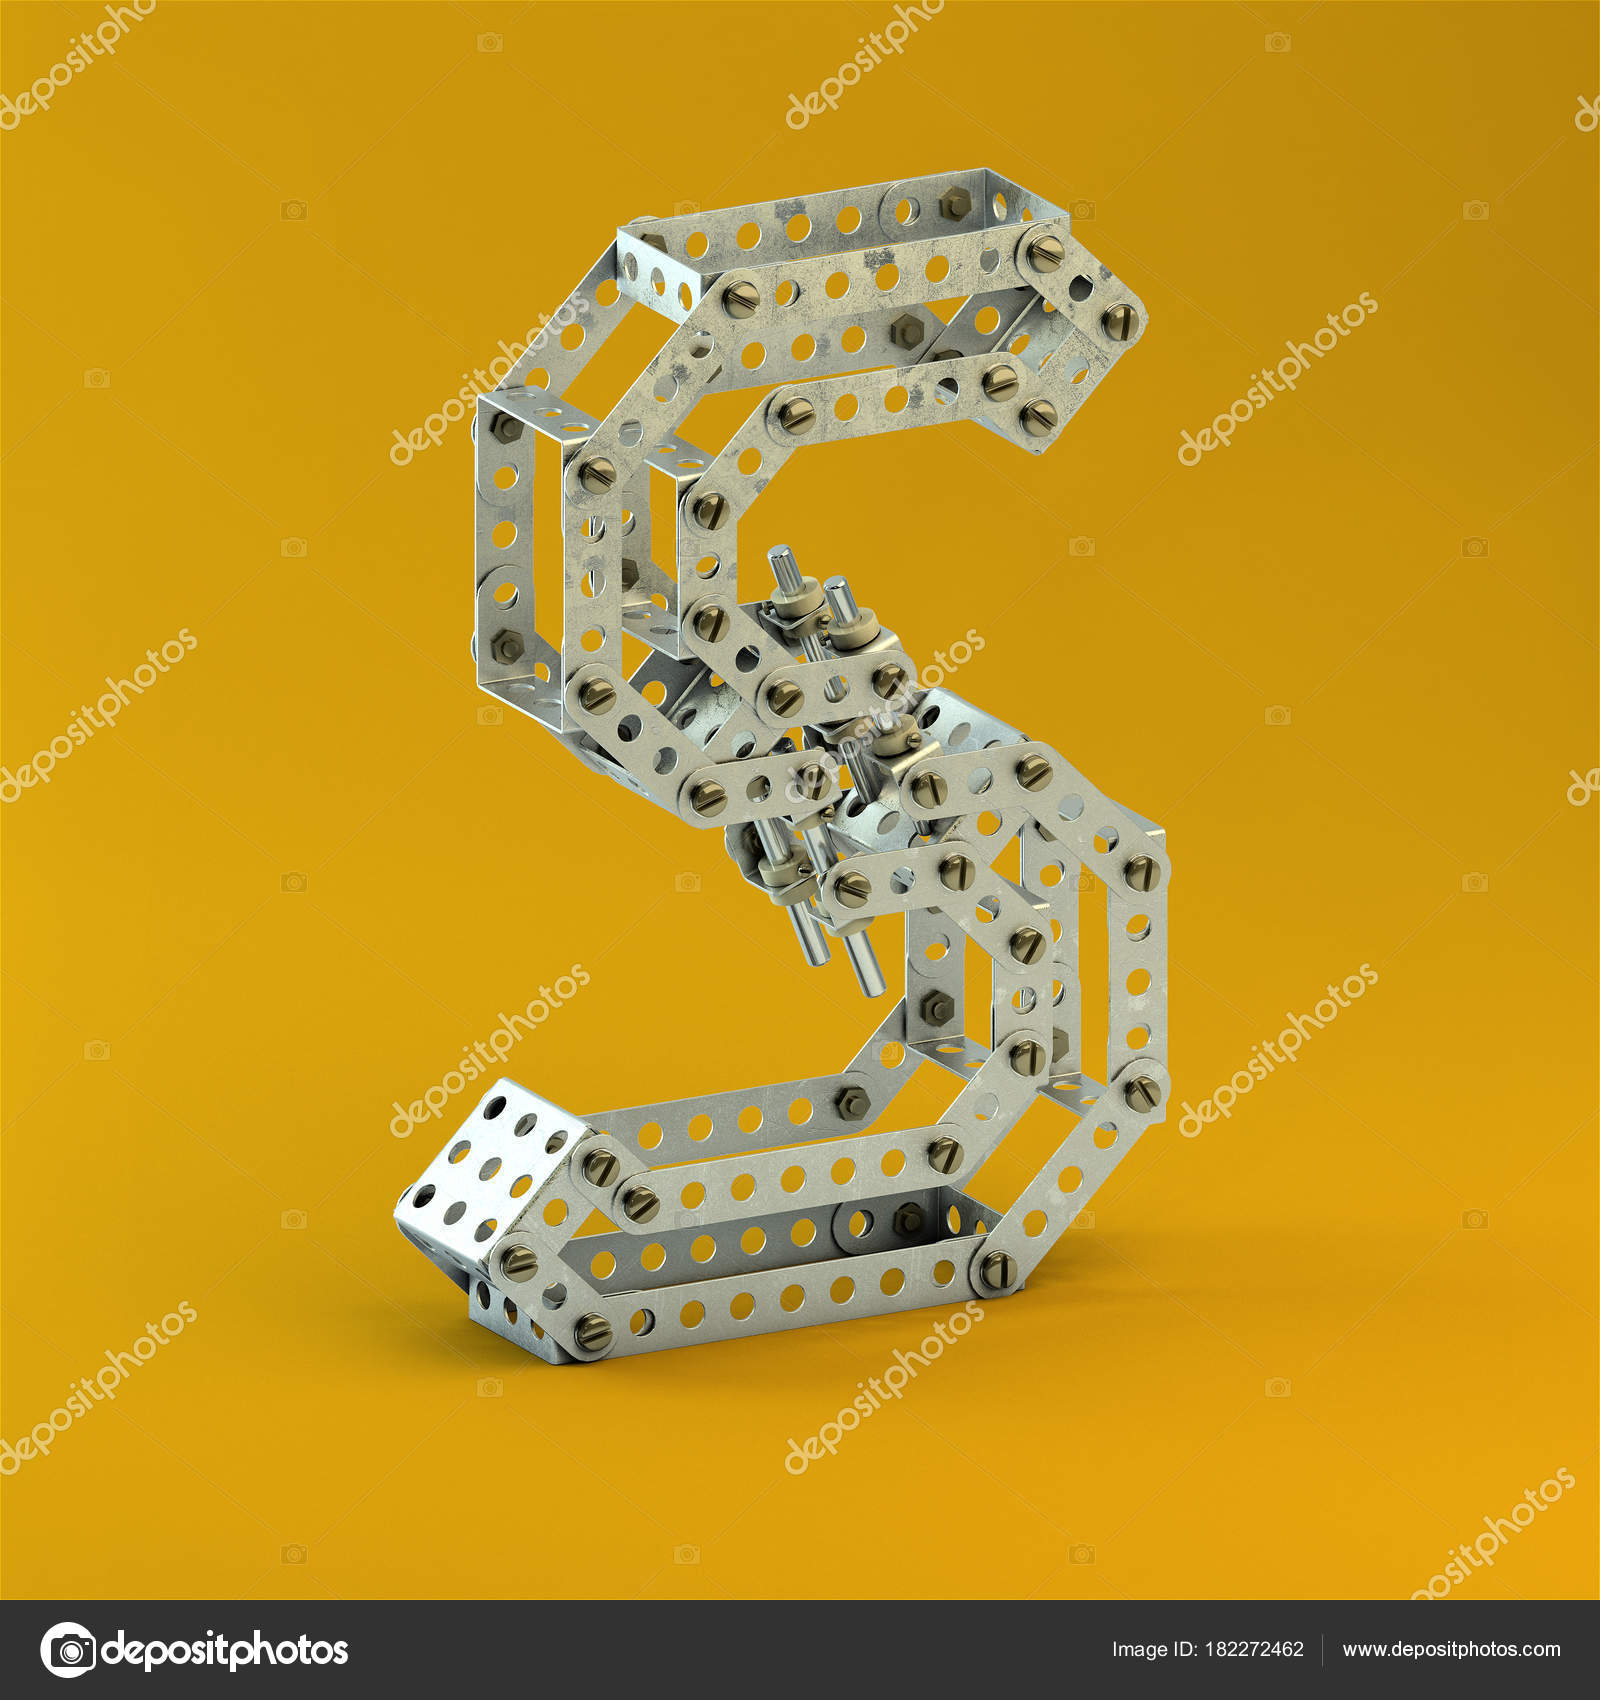 Rendering Alphabet Letter Metal Constructor Style Old Advertising ...